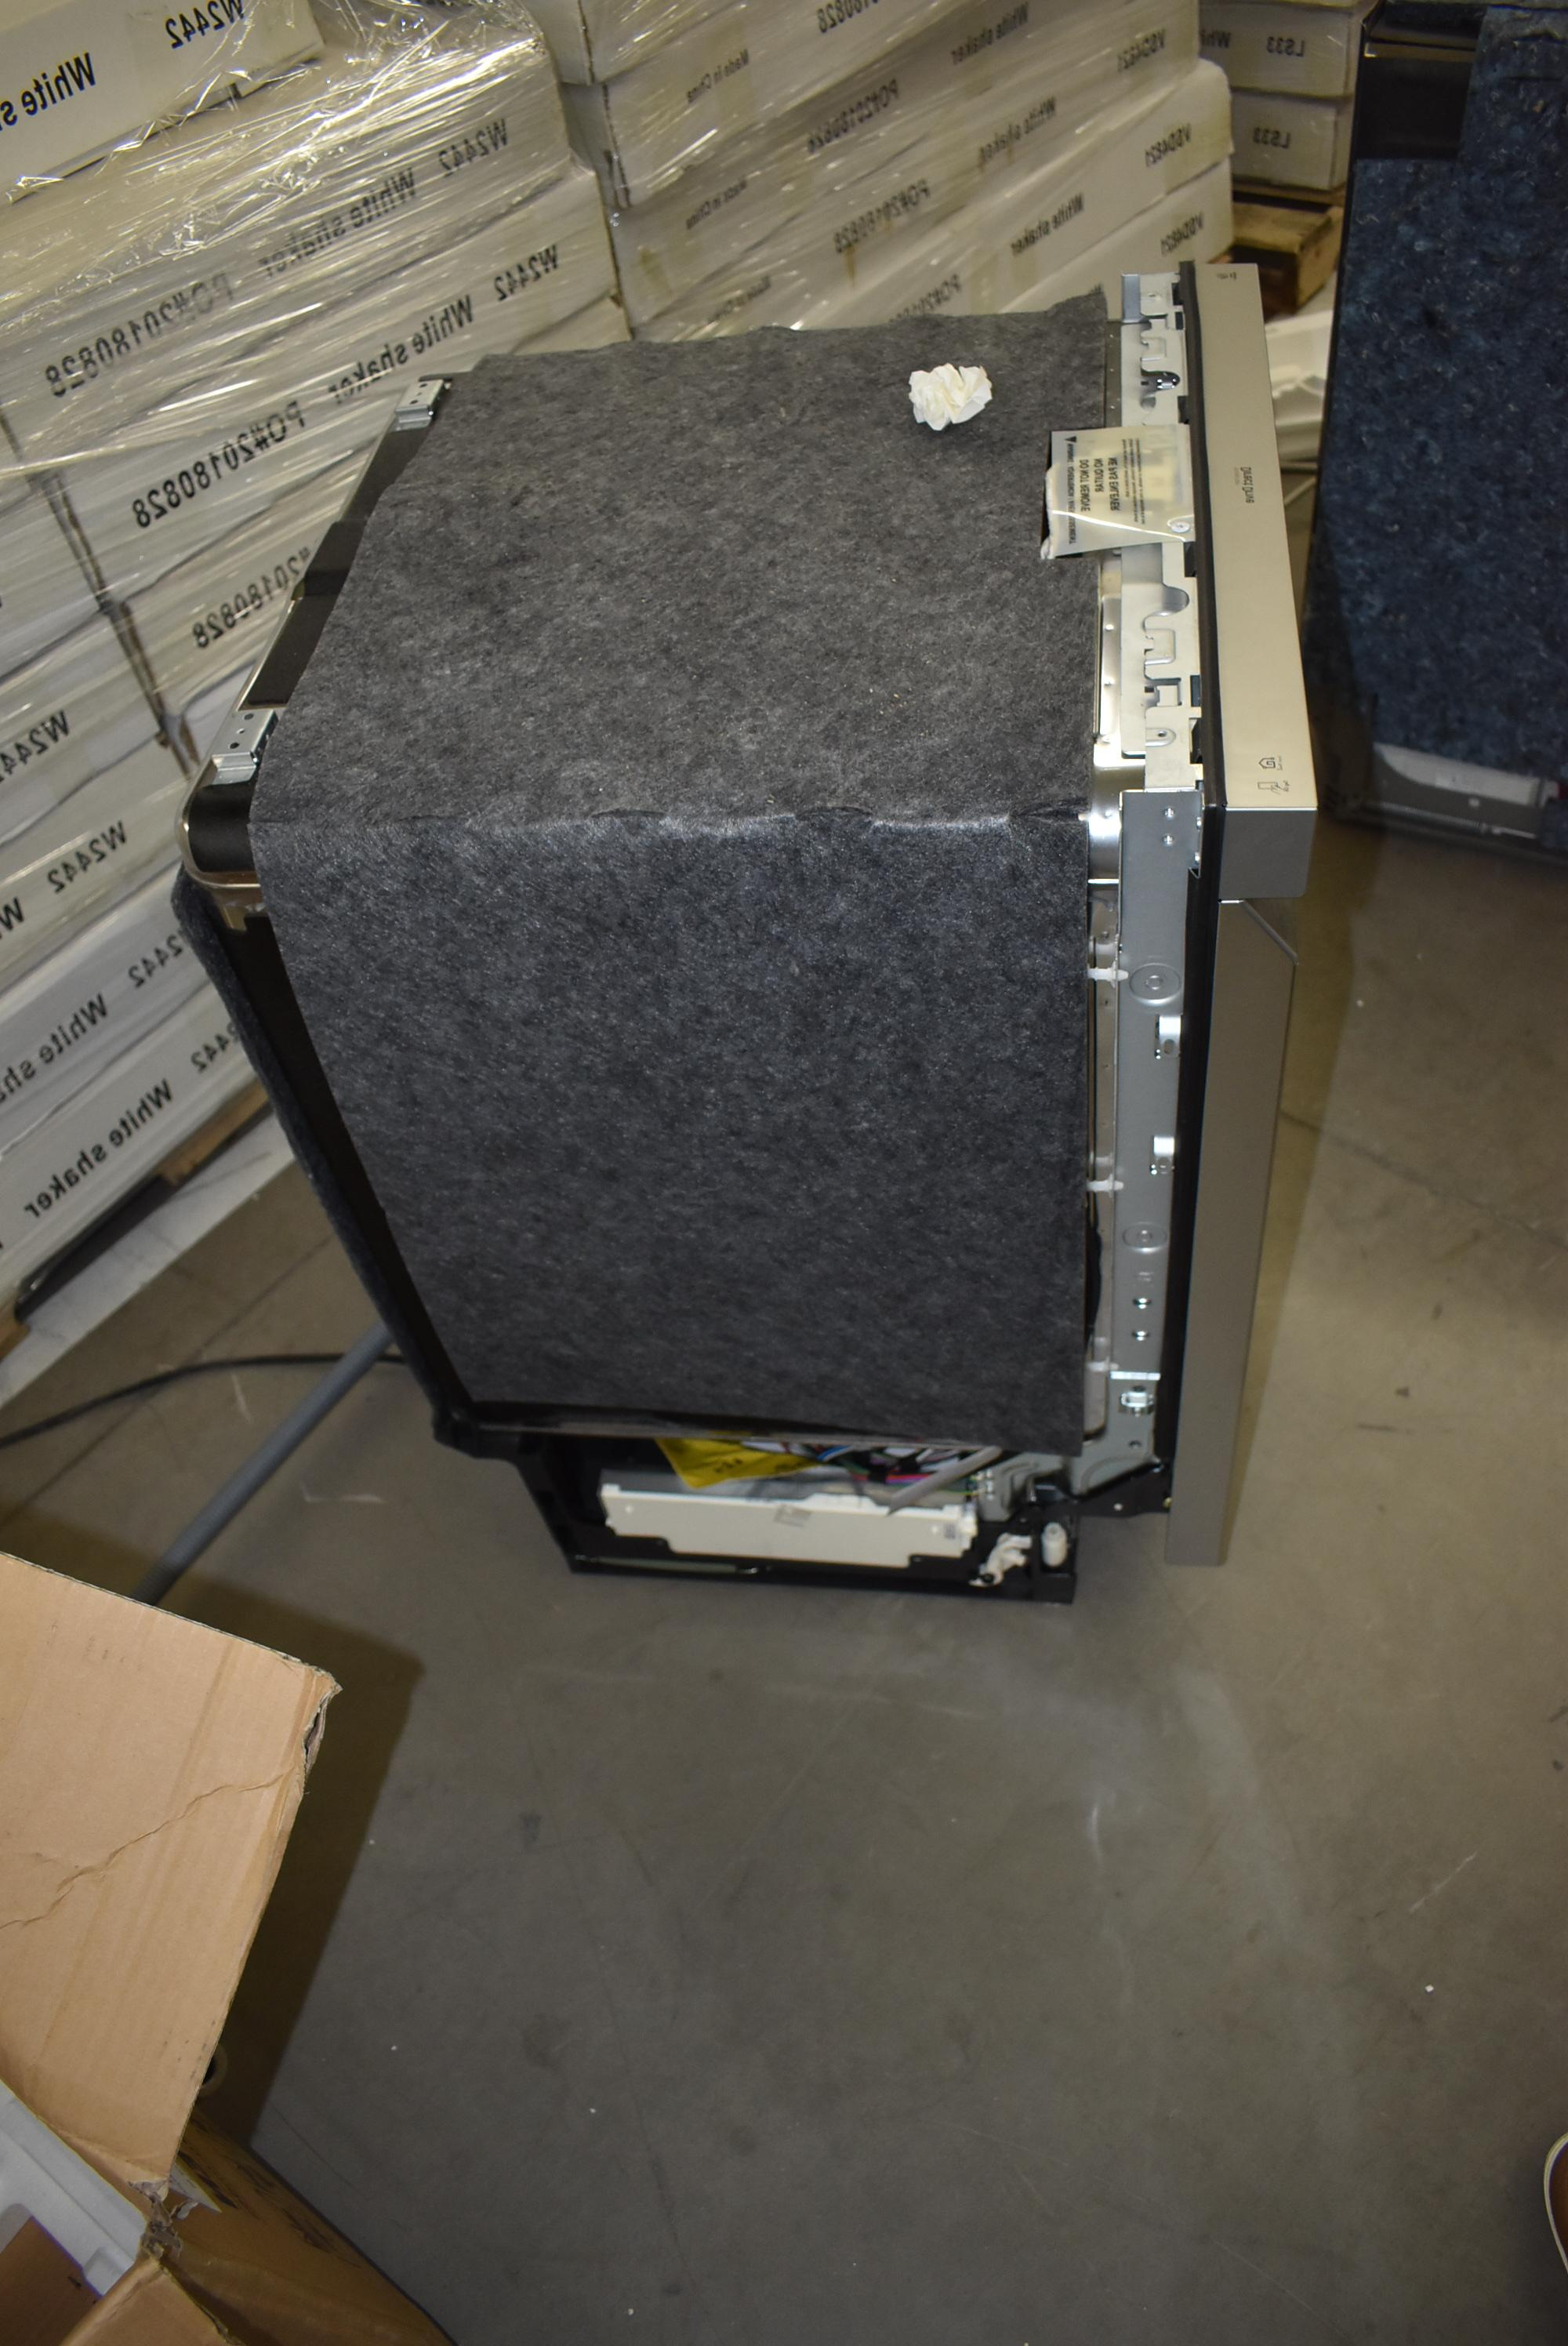 LG Stainless Full Console #37930 HRT